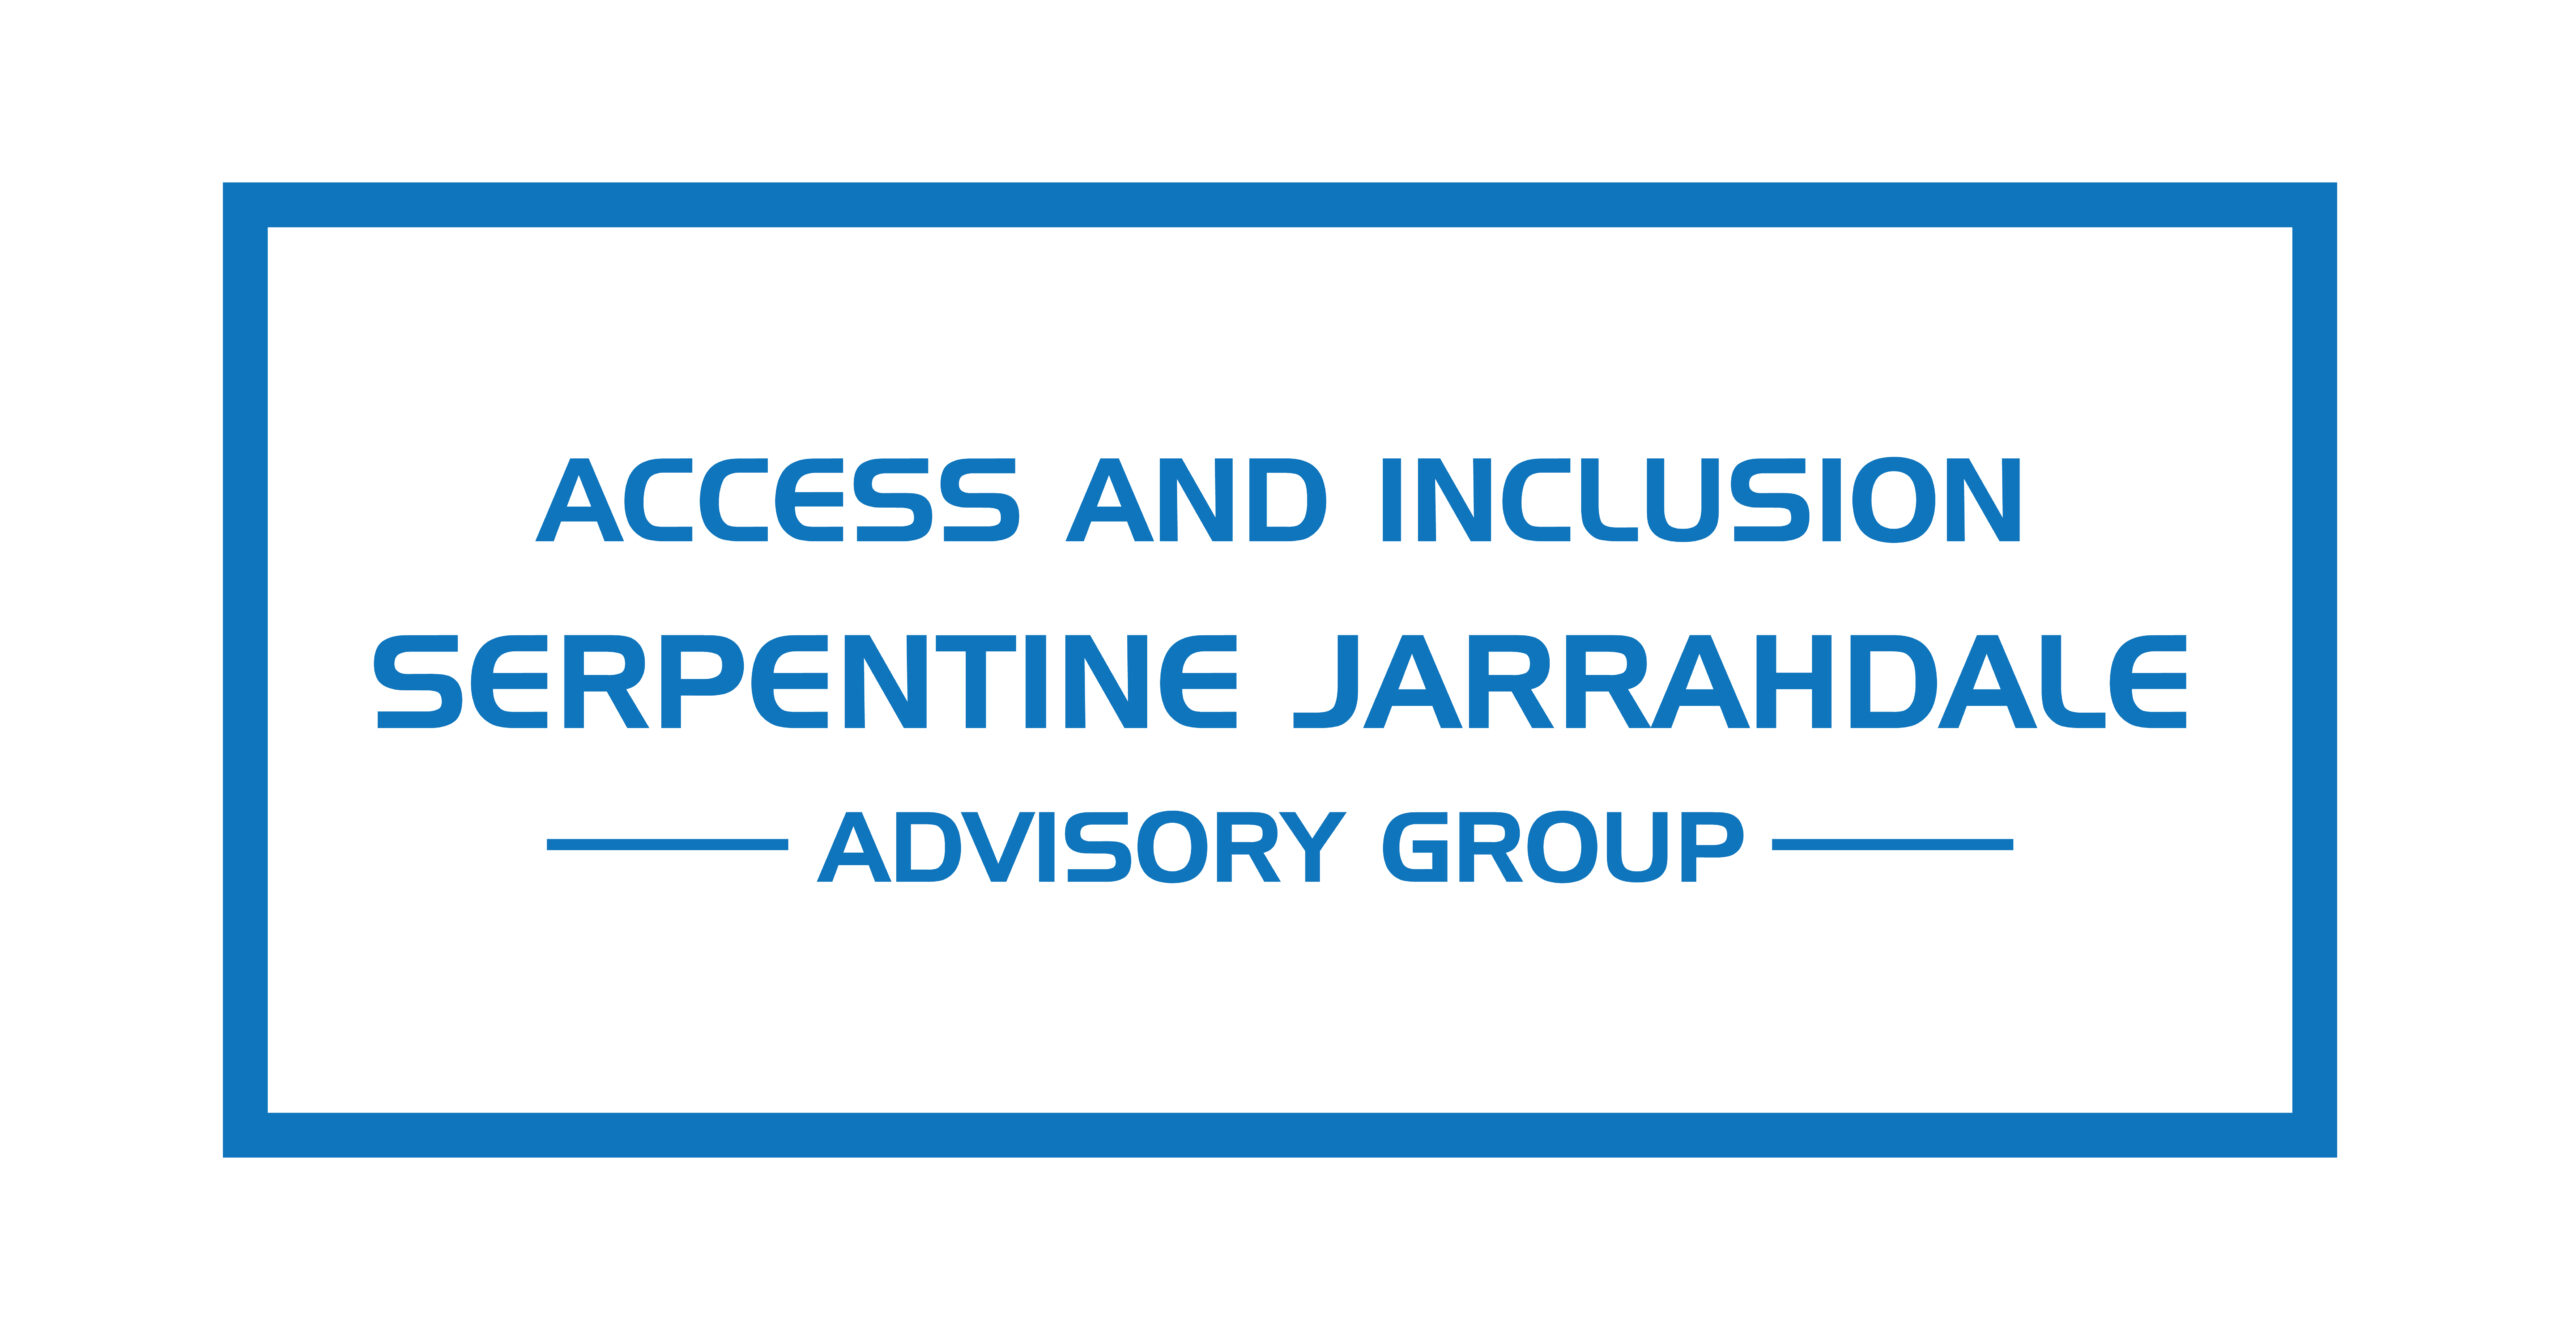 Access and Inclusion Advisory Committee